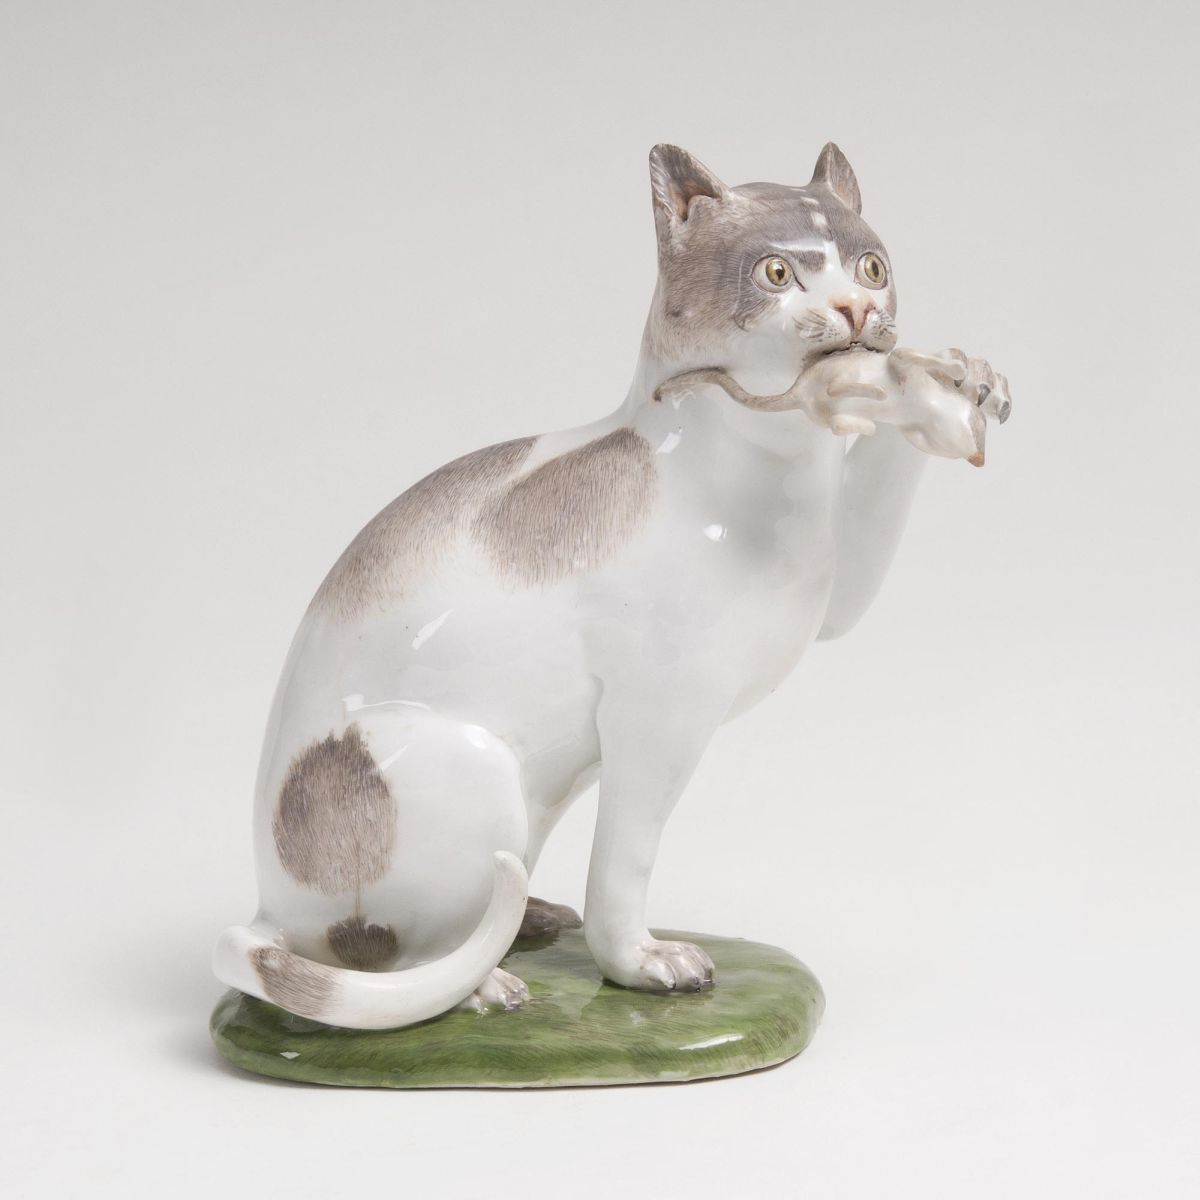 A rare Animal Figure 'Large Cat with Mouse'